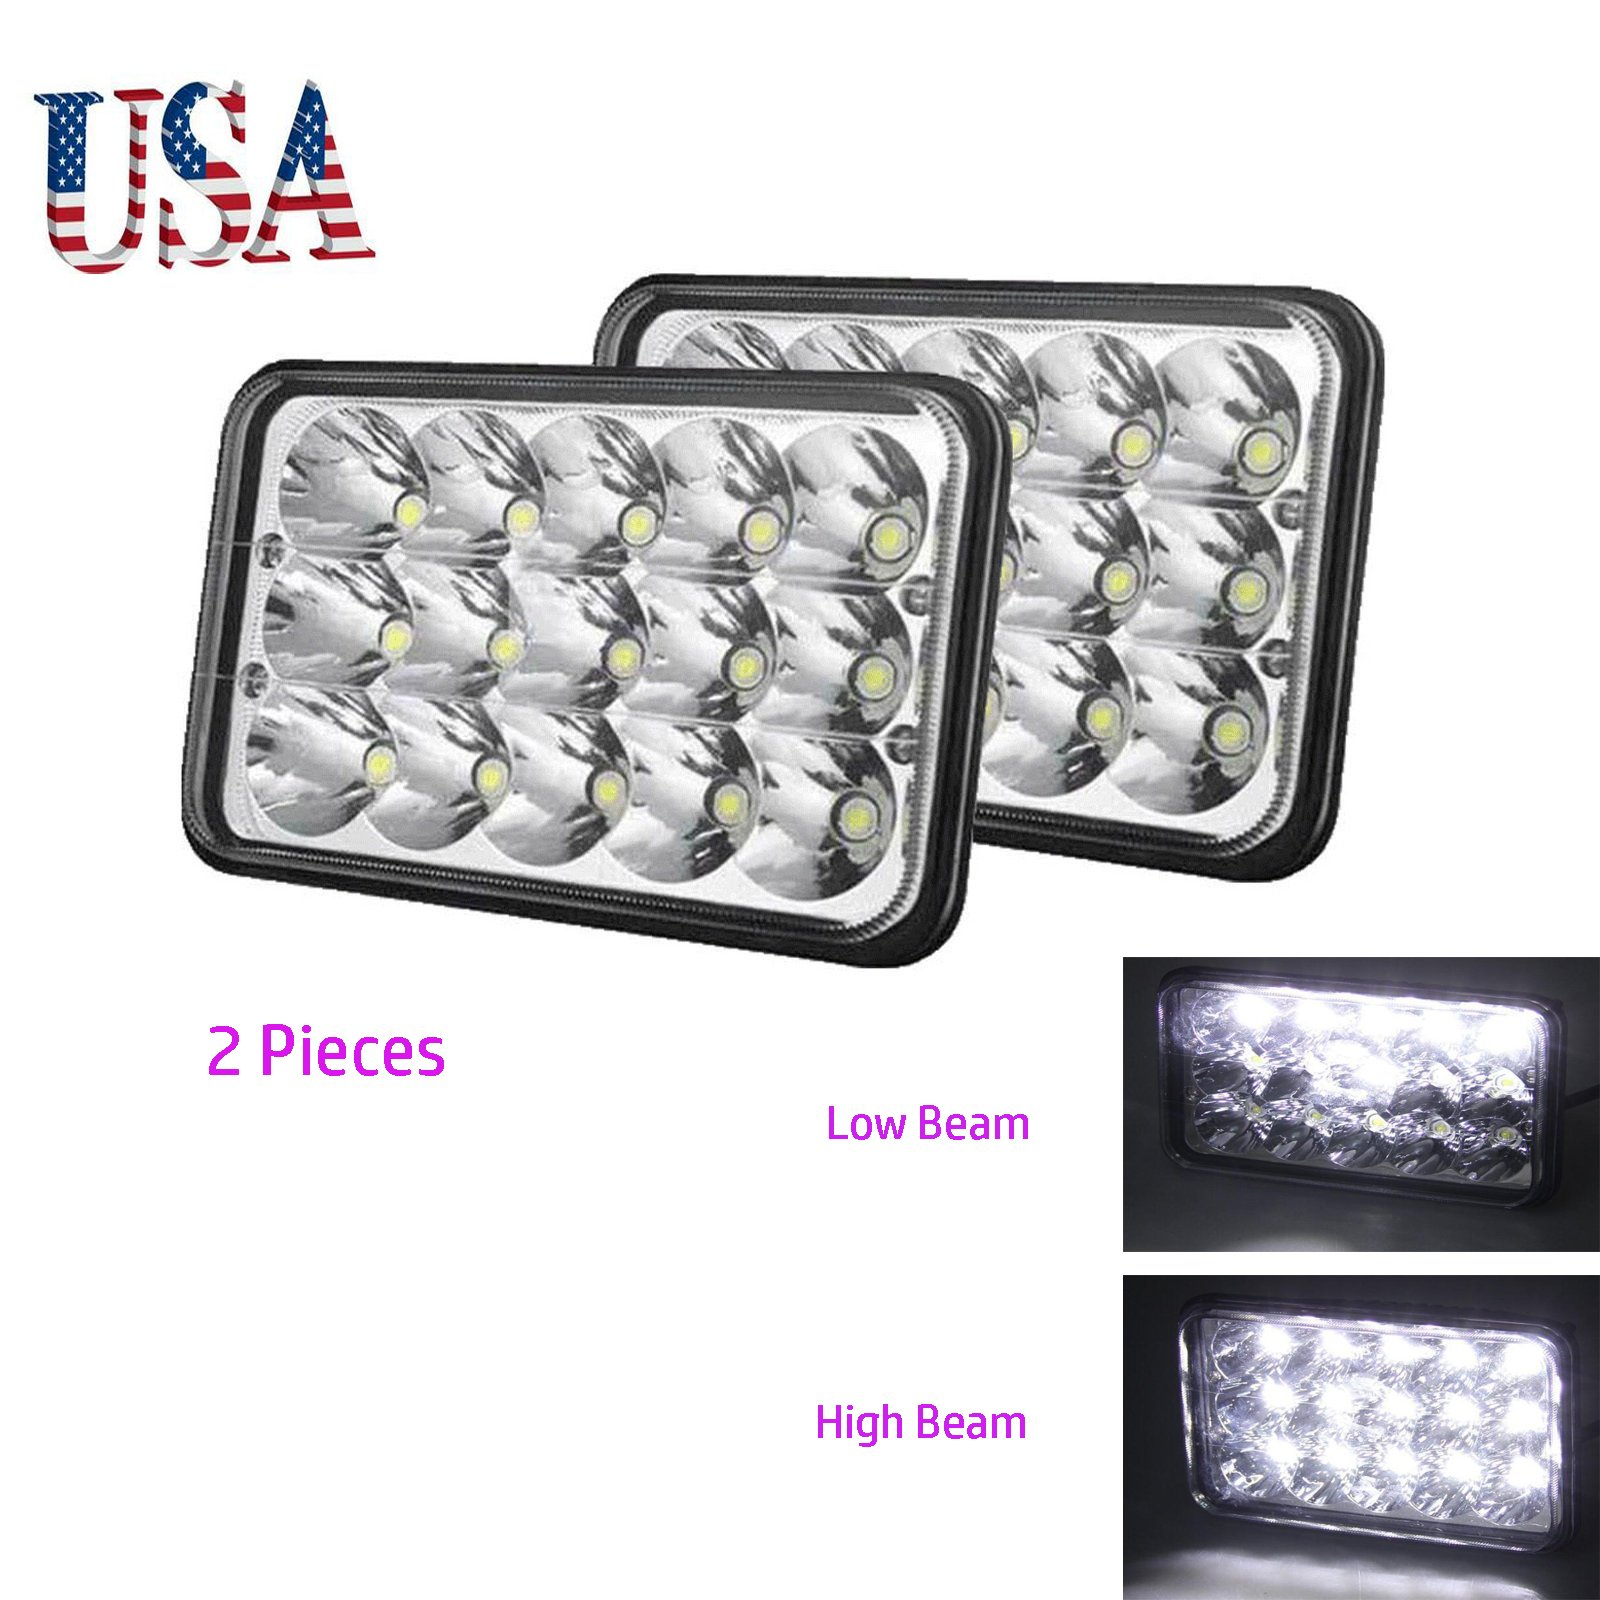 2 PCS 4x6 inch Square LED Headlights 6000K Super White Sealed Beam Rectangular Headlamps High Low Beam DRL For H4651 H4652 H4656 H4666 H6545